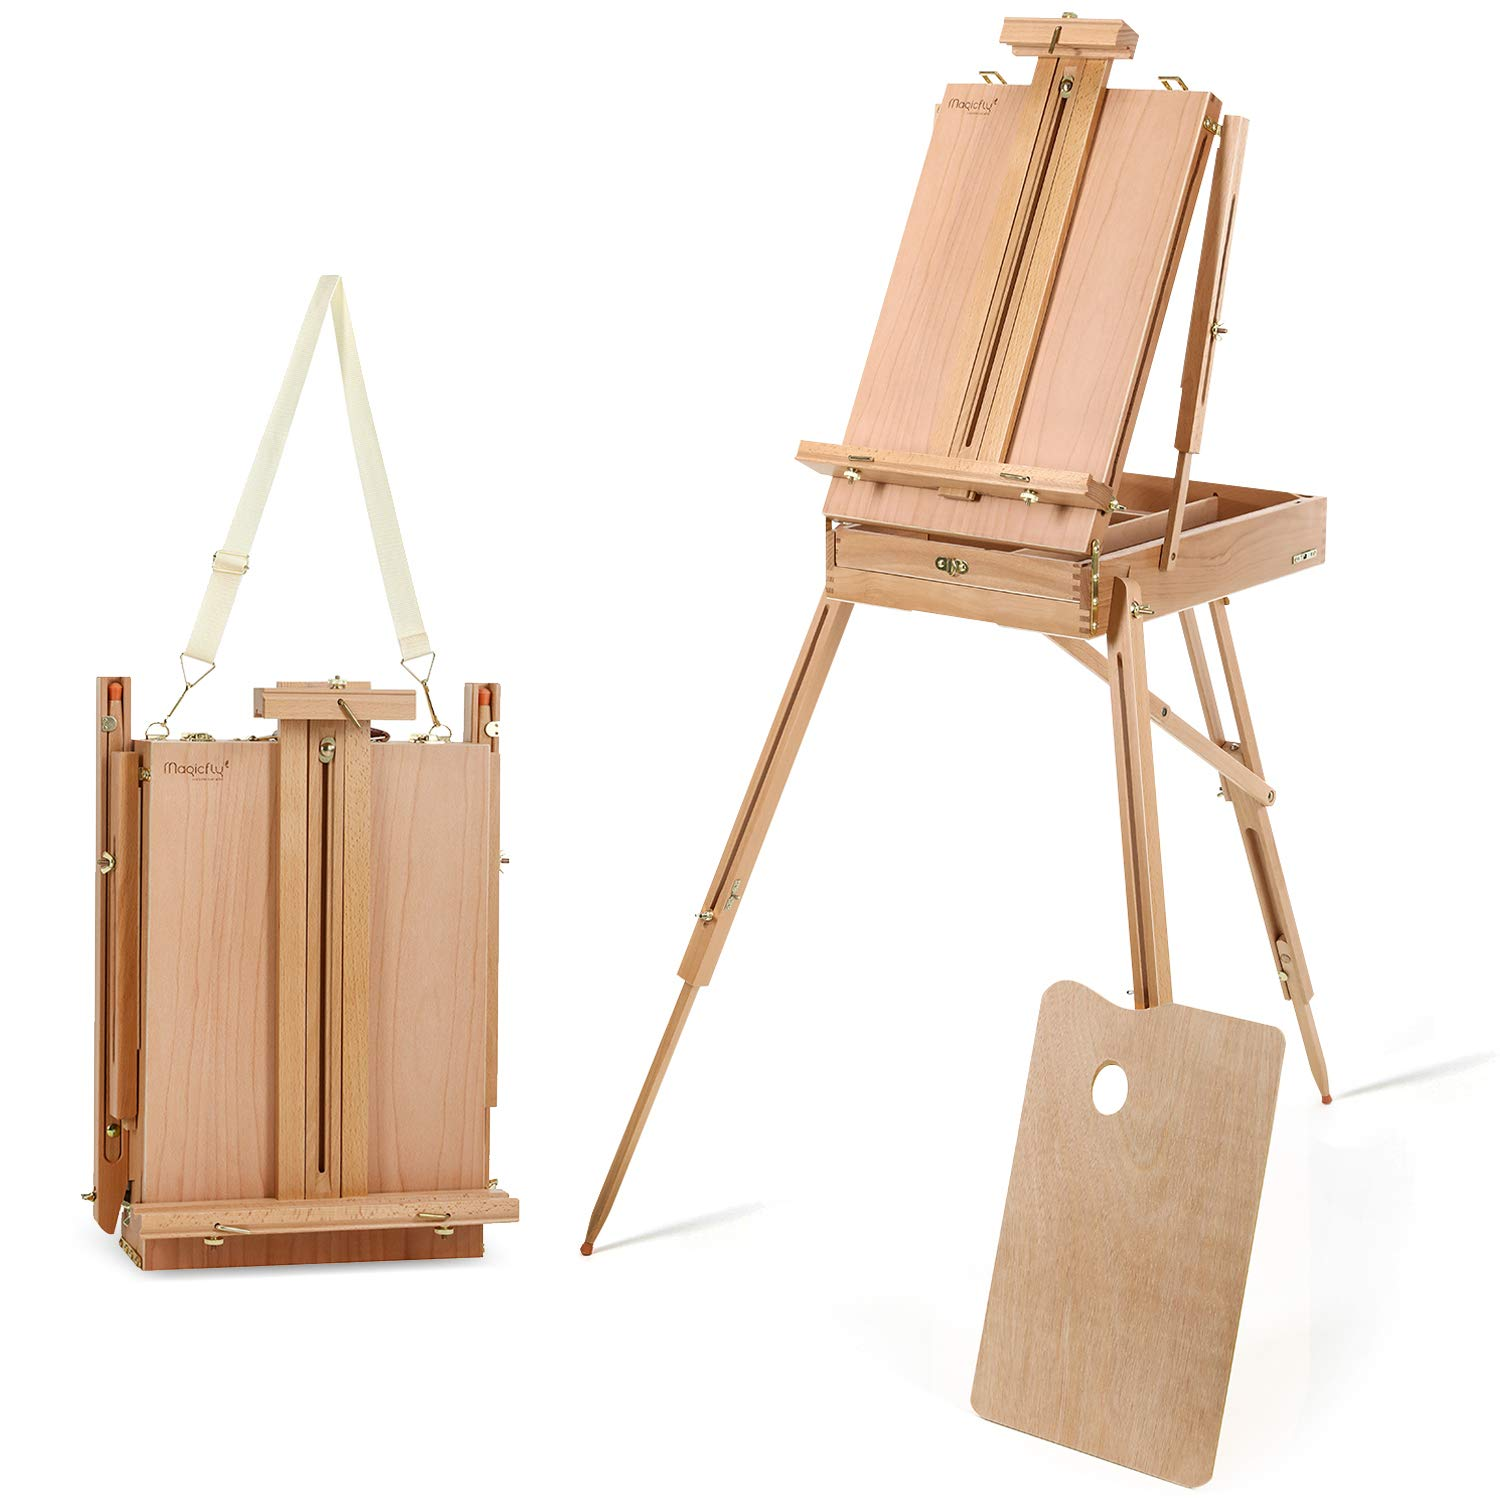 Magicfly Portable Art Easel with Storage Sketch Box, French Style Adjustable Painters Easel with Wooden Pallete Shoulder Strap for Painting and Drawing by Magicfly